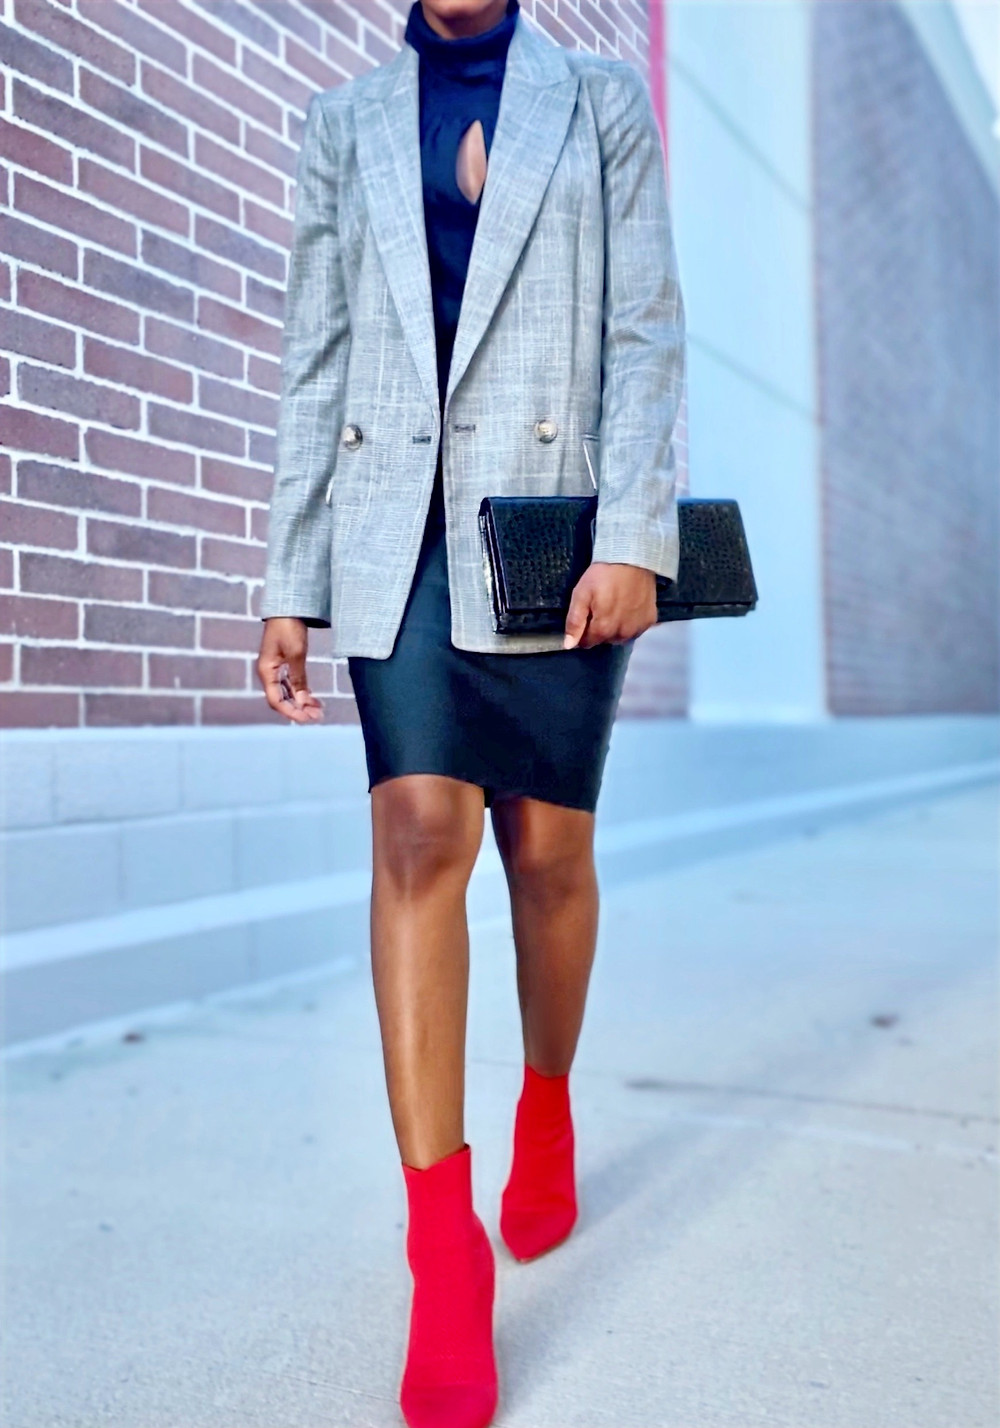 Plaid blazer layered over a black roll neck top and a fitted black pencil skirt